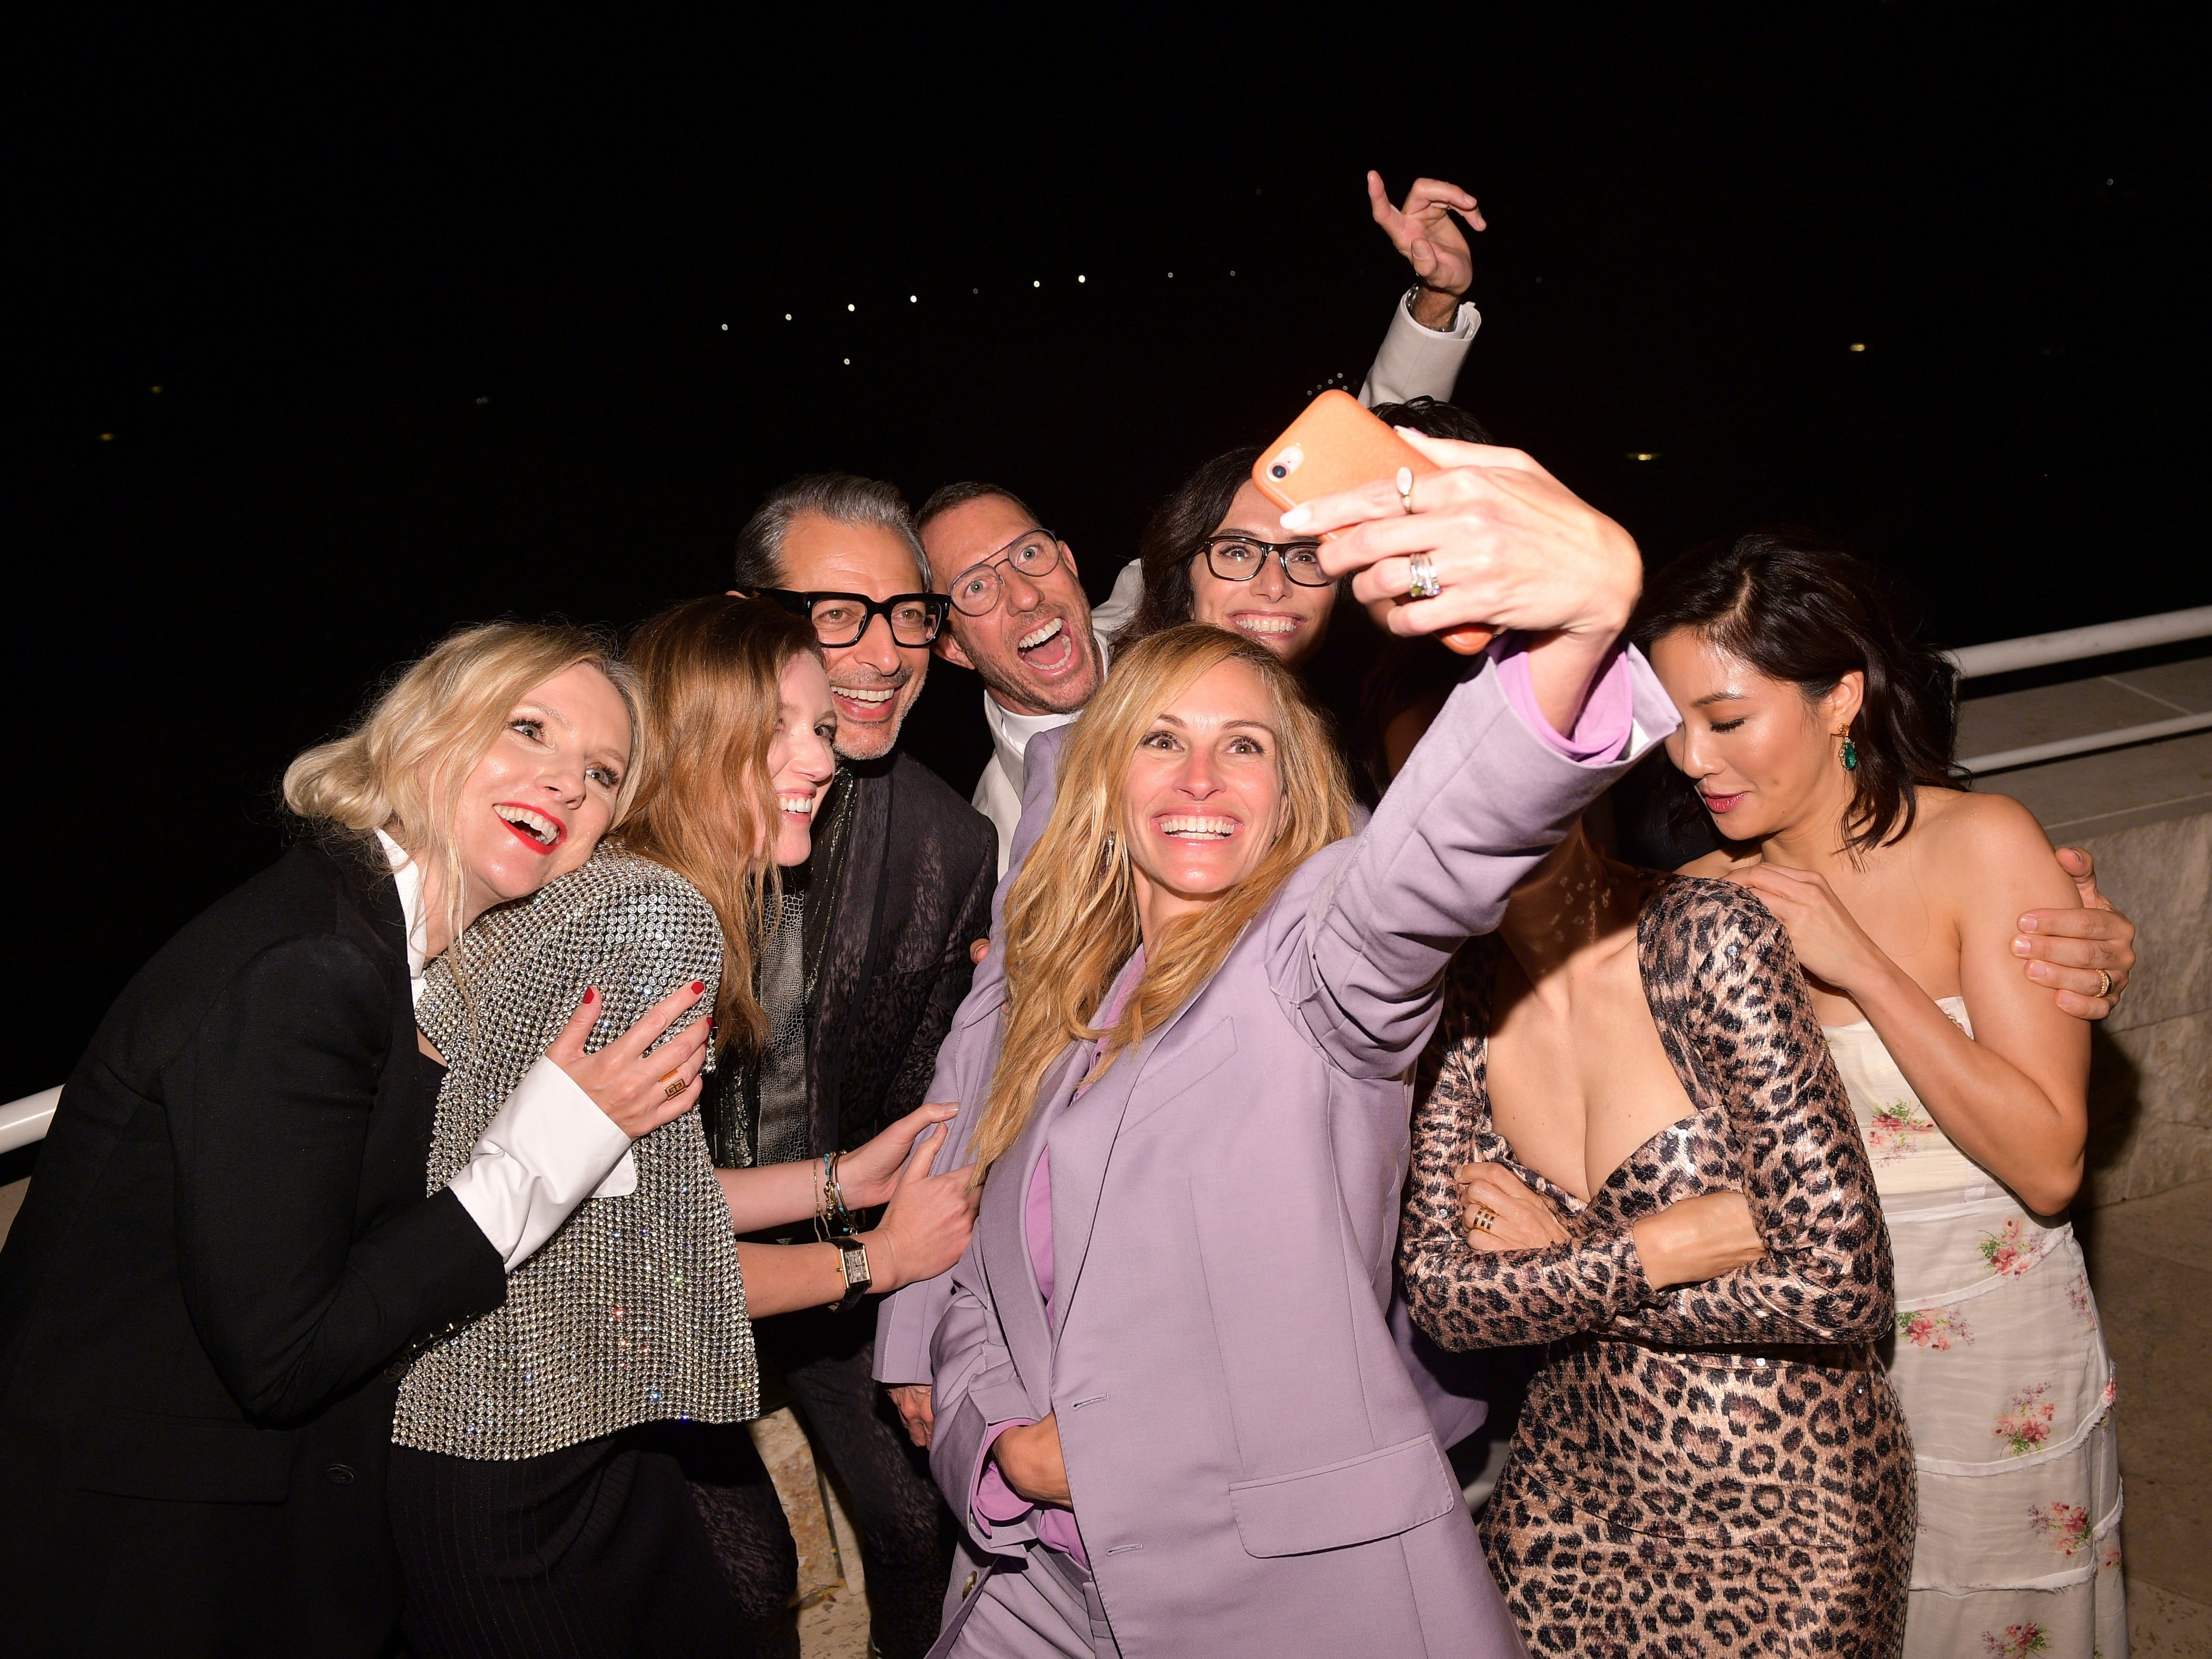 LOS ANGELES, CA - OCTOBER 22:  (L-R) InStyle Magazine Editor in Chief Laura Brown, Clare Waight Keller, Jeff Goldblum, Chris McMillan, Julia Roberts, Elizabeth Stewart, James Kaliardos, Karla Welch, and Constance Wu attend the 2018 InStyle Awards at The Getty Center on October 22, 2018 in Los Angeles, California.  (Photo by Matt Winkelmeyer/Getty Images for InStyle) ORG XMIT: 775245208 ORIG FILE ID: 1052792926